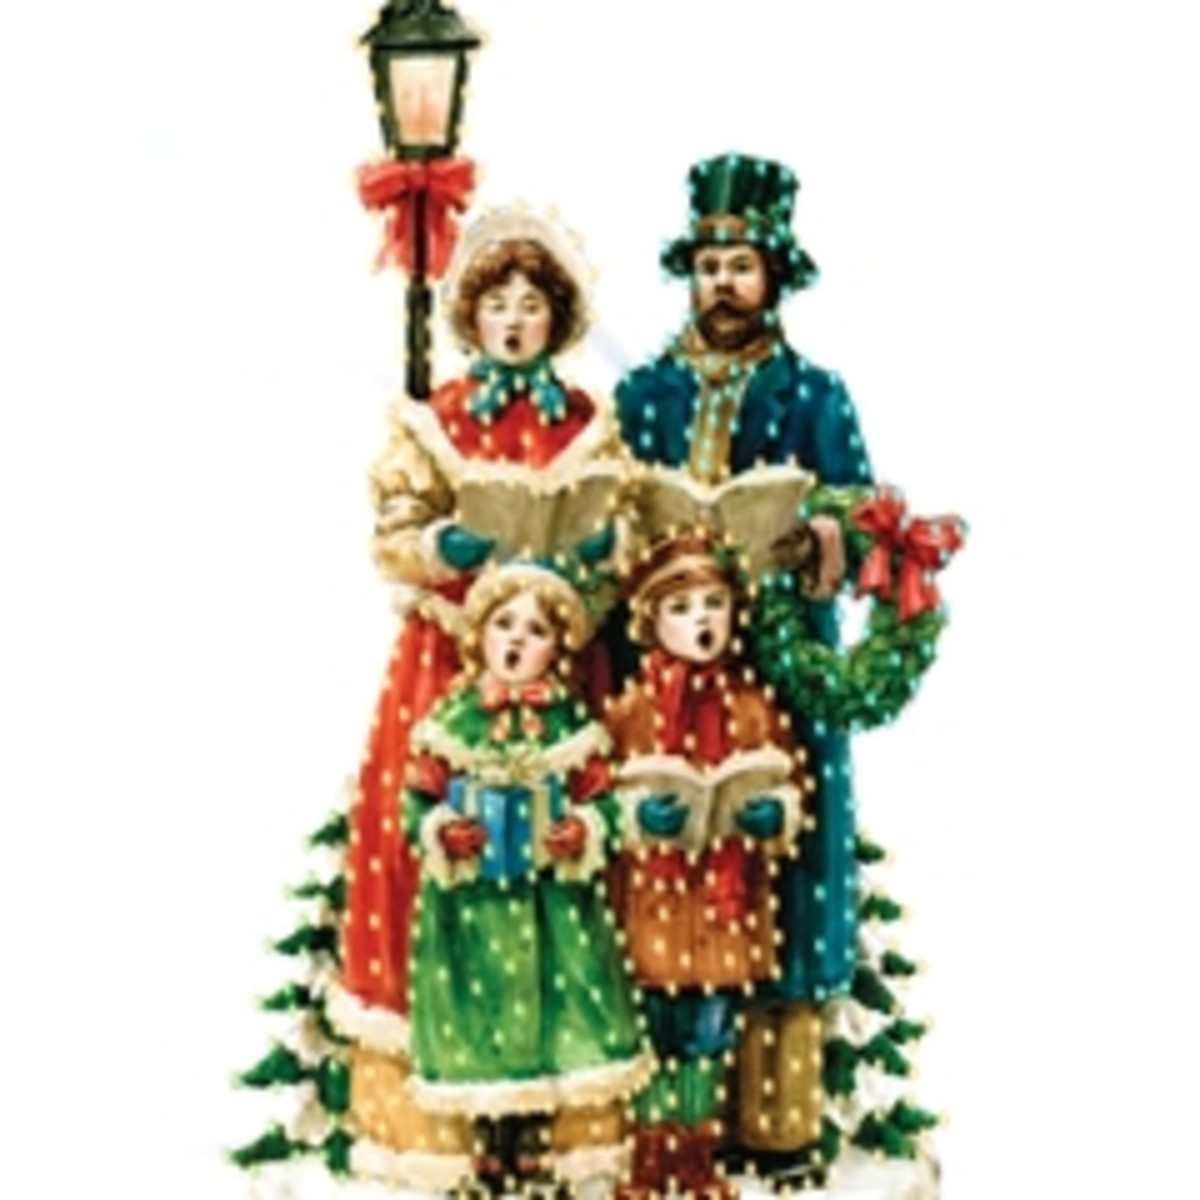 Victorian Christmas Carolers Decorations: Christmas Yard Art By Barnacle Bill